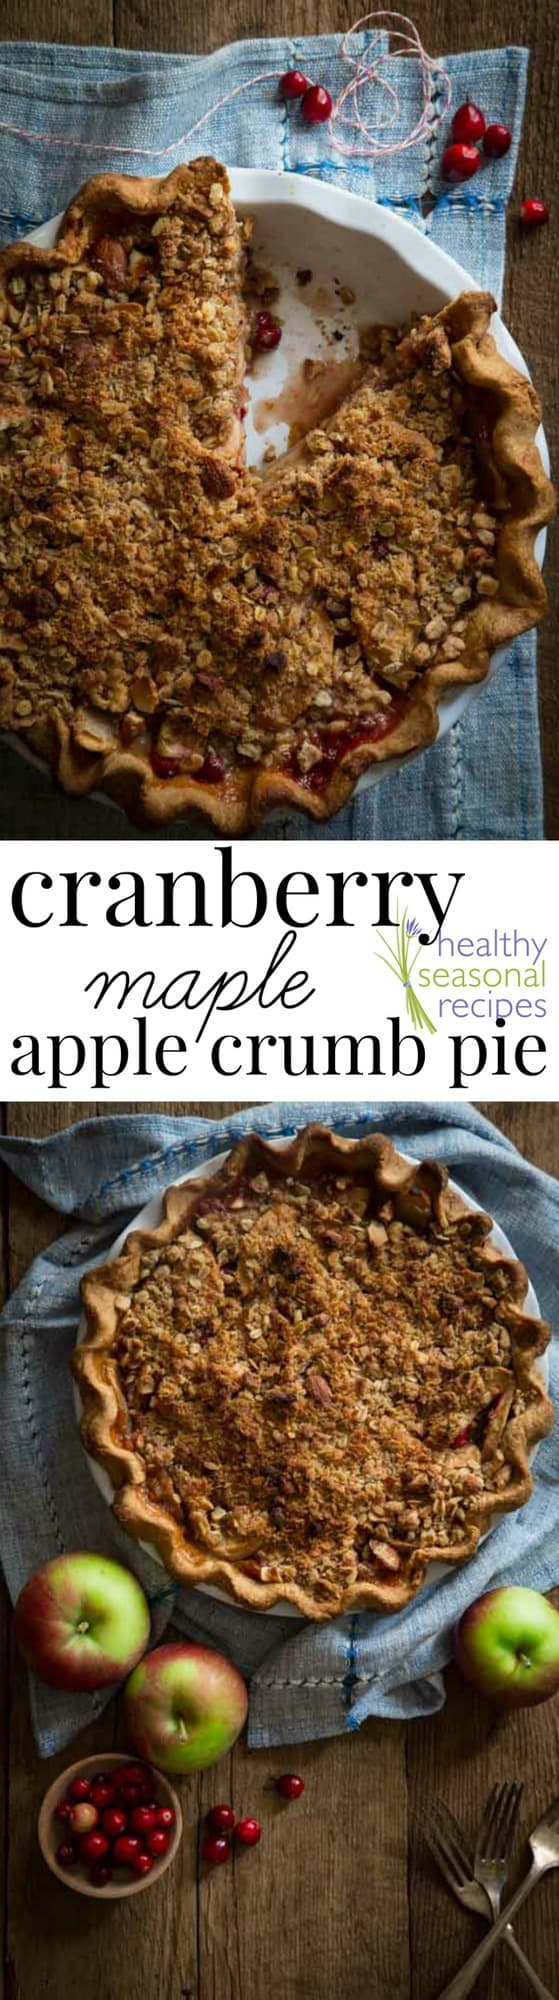 Deep Dish Apple Cranberry Pie With Oatmeal Pecan Crumb Topping Recipe ...